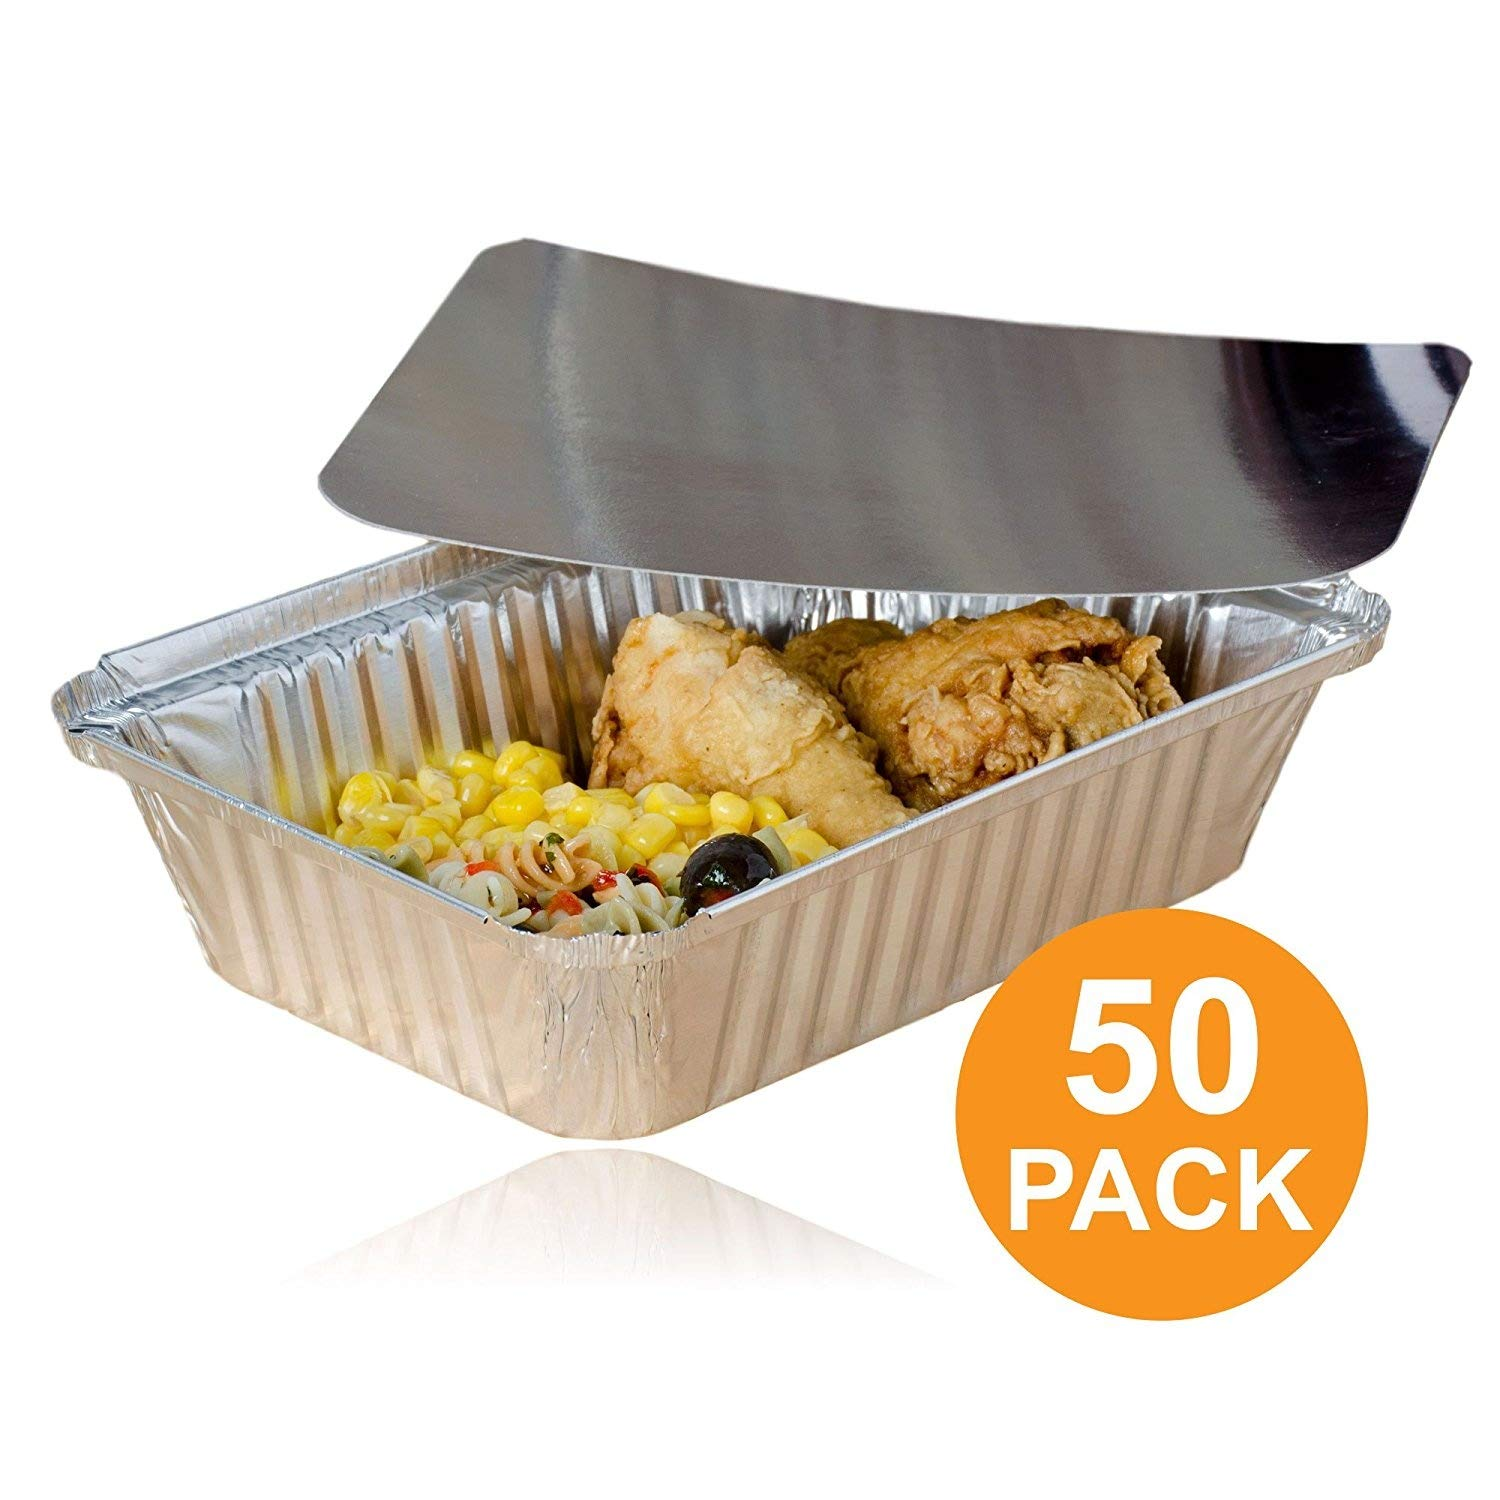 Rectangular Disposable Aluminum Foil Pan Take Out Food Containers with Flat Board Lids, Steam Table Baking Pans, 32 oz, 2.25 lb, Quart [50 Pack]